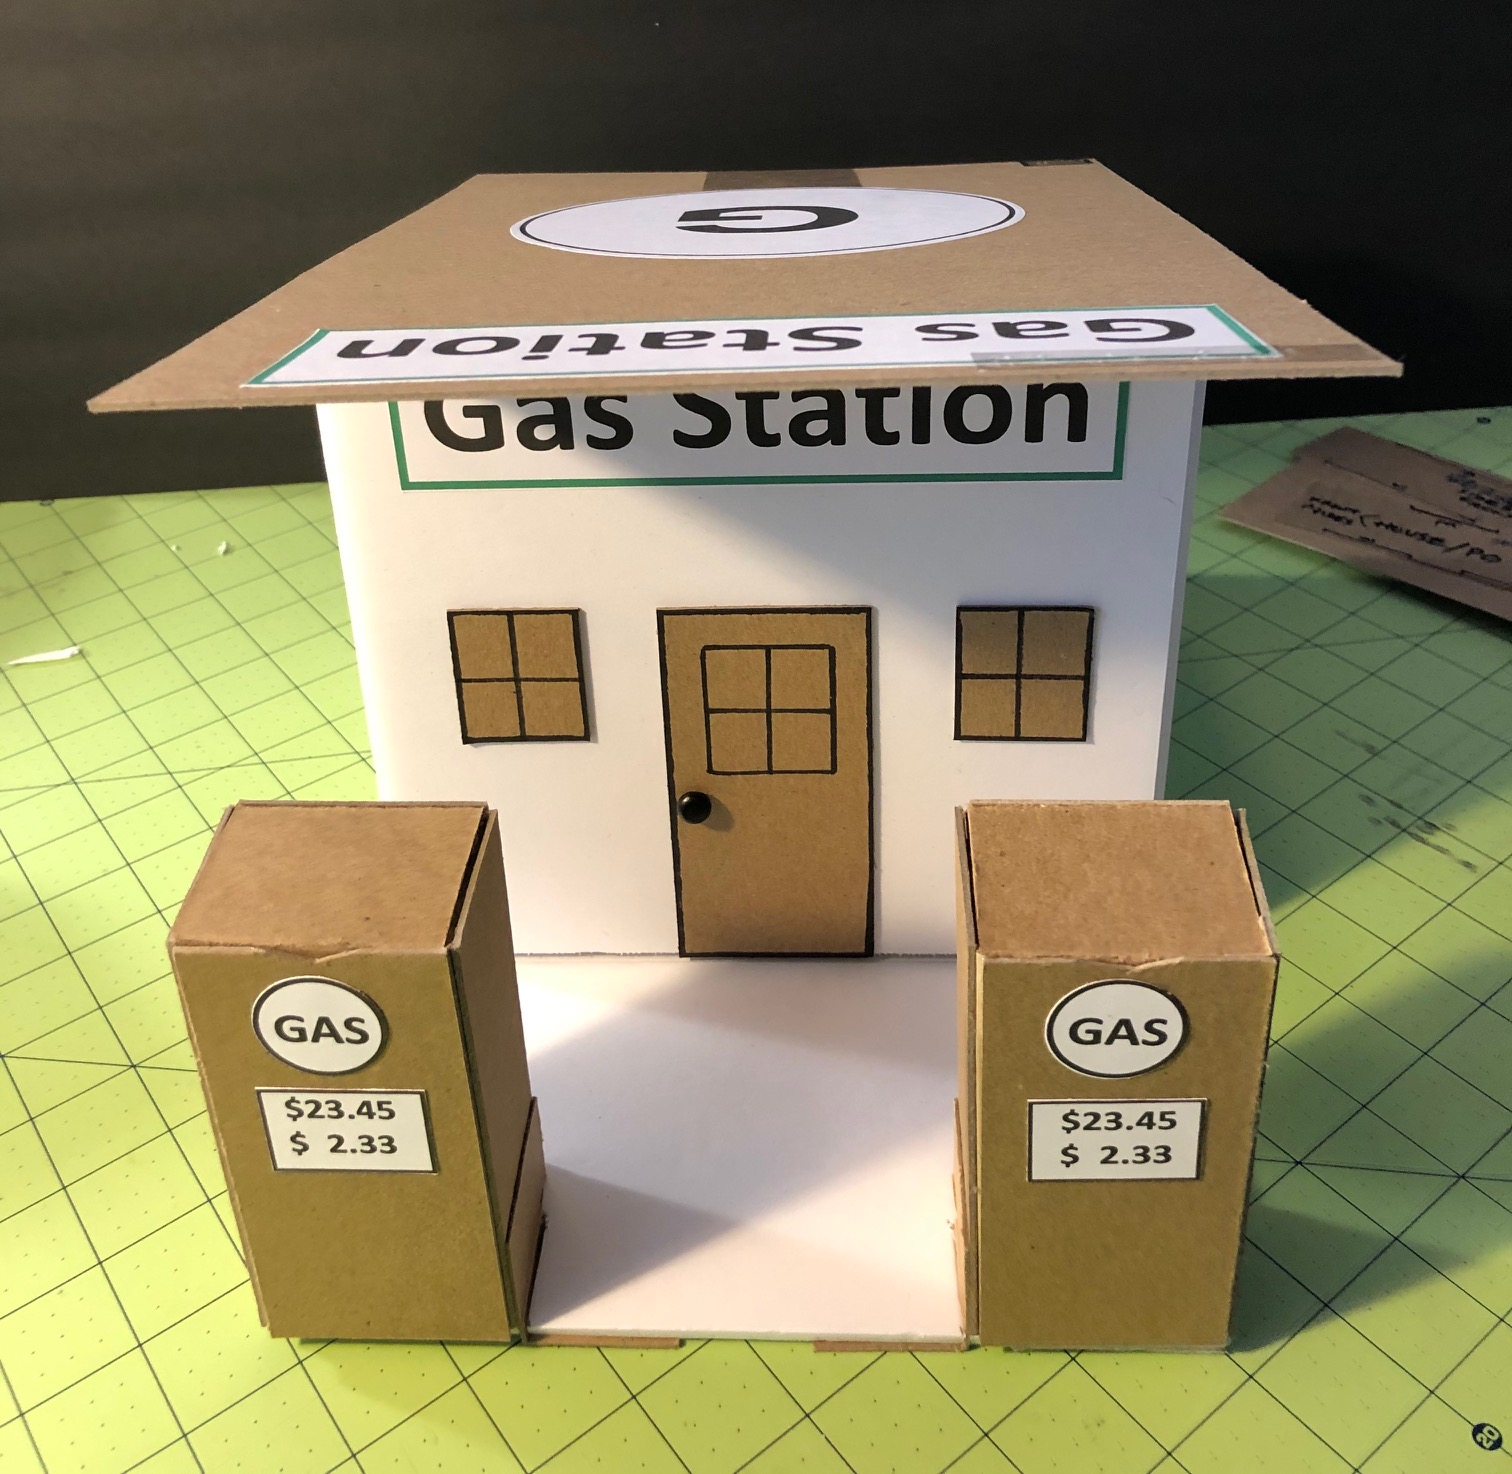 Photo of Small City building front view: Gas station with 2 cardboard gas pumps in front of the building.